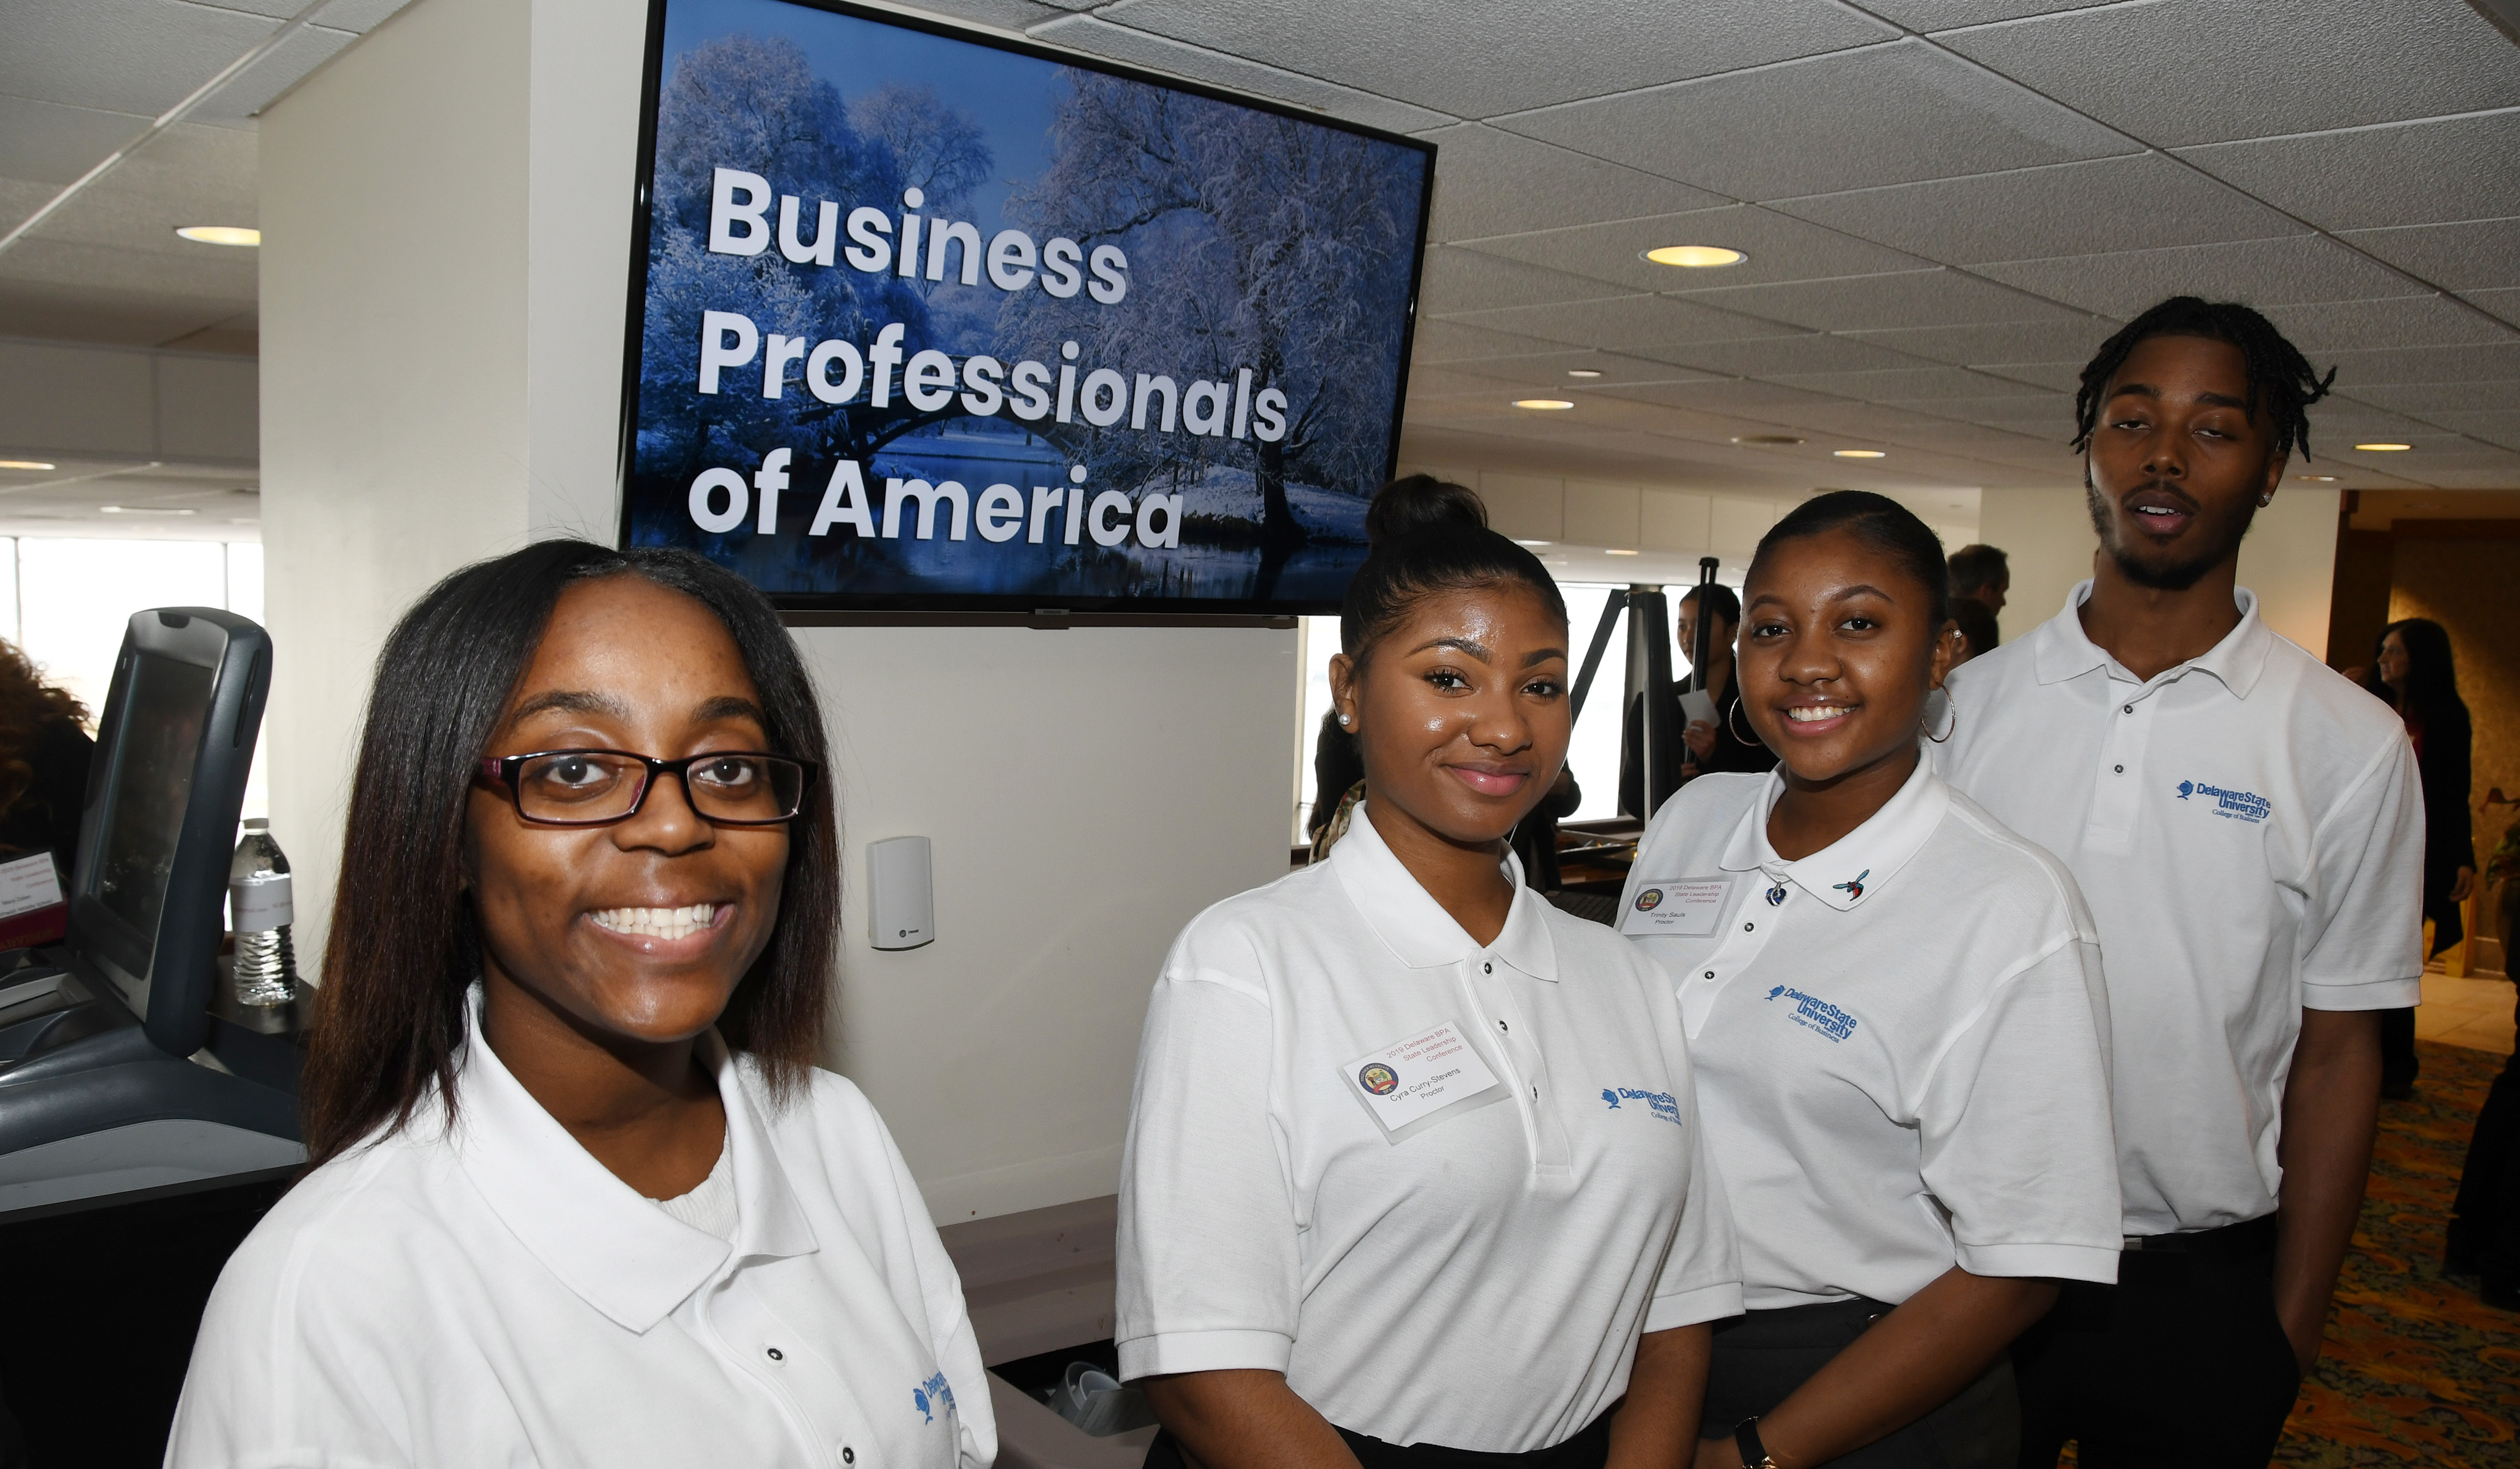 (L-r) University students Charlyeshia Jones, Trinity Savis, Tyra Curry-Stevens and Marvin Hagwood were among the 90 Delaware State University students who volunteered as proctors for the Delaware Business Professionals of America Leadership Conference held at Dover Downs Hotel and Casino Feb. 26-27.